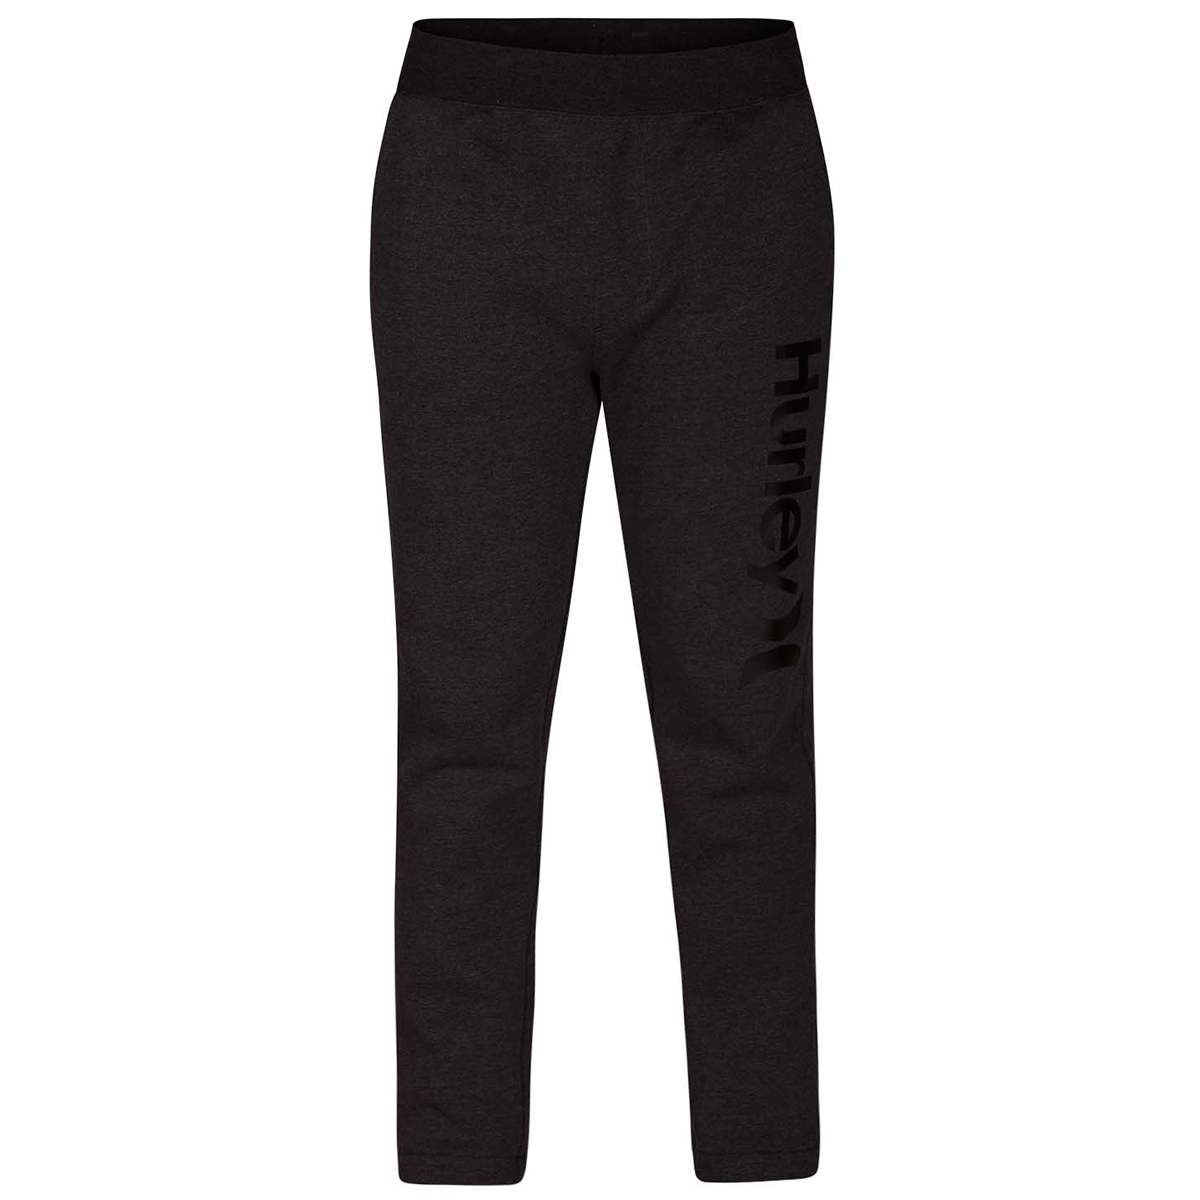 Hurley Guys' Surf Check One And Only Track Pants - Black, L